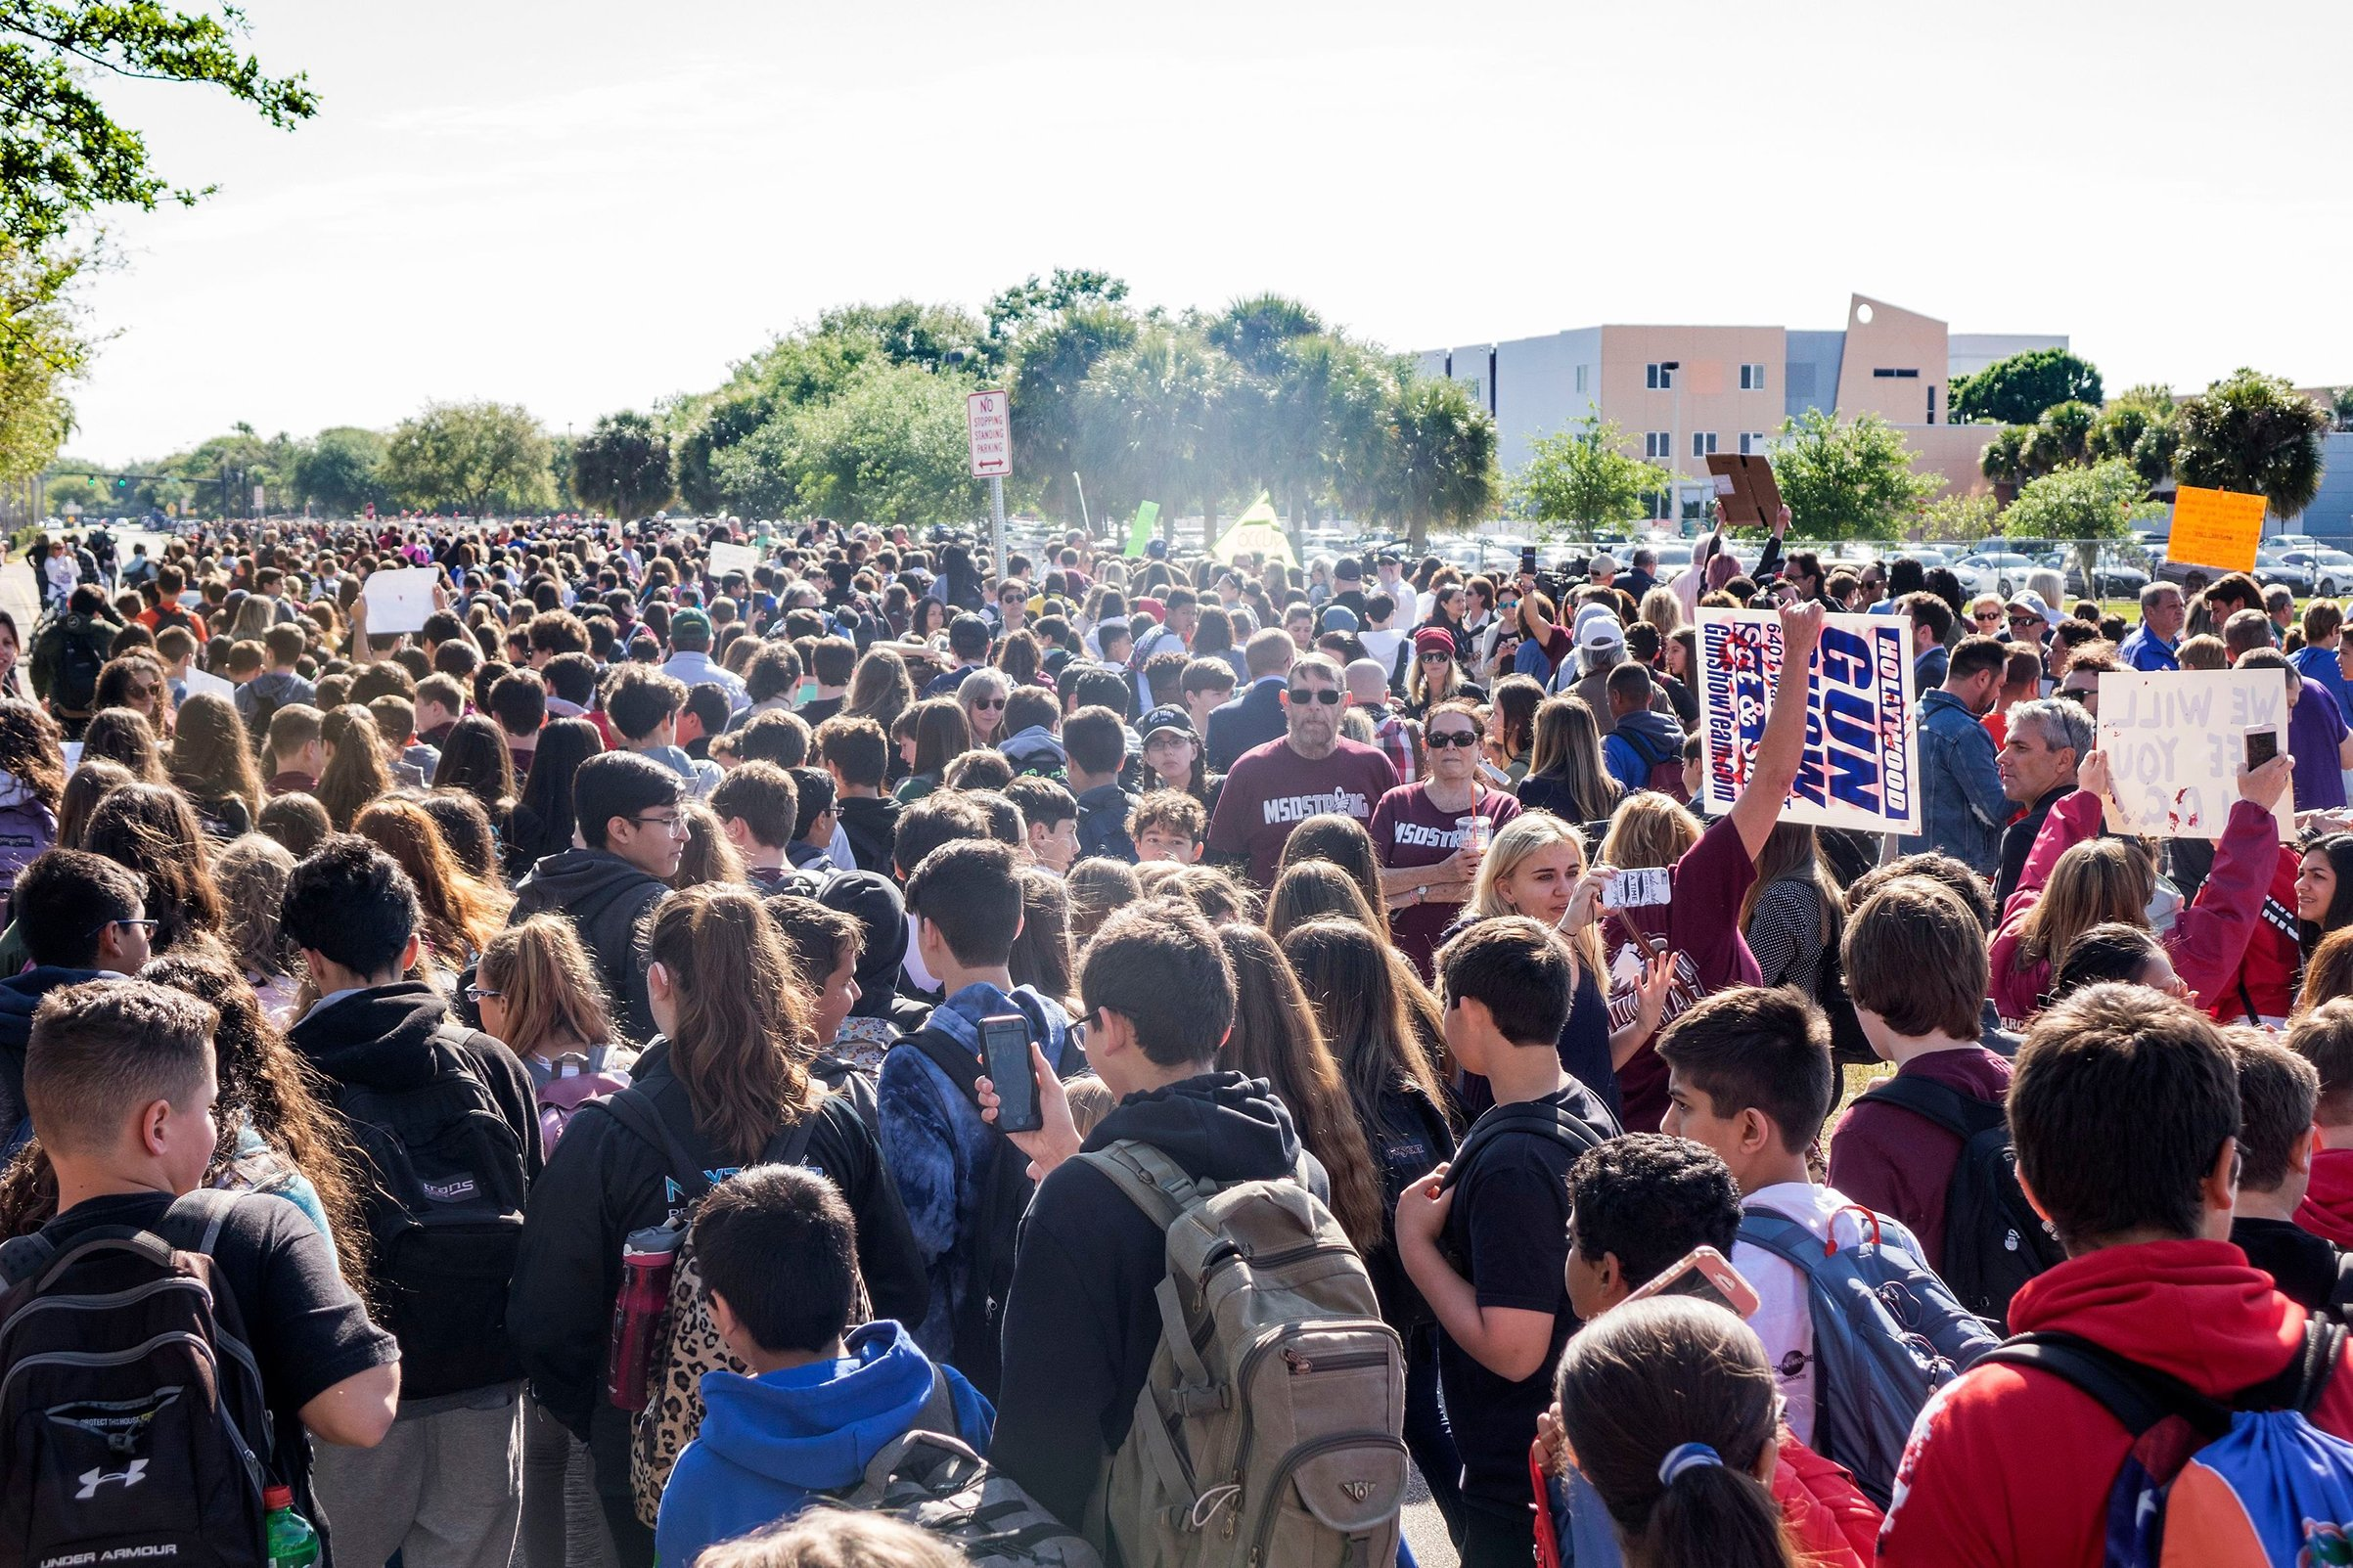 Denver Catholic School Students Chose To Pray Instead Of Walking Out